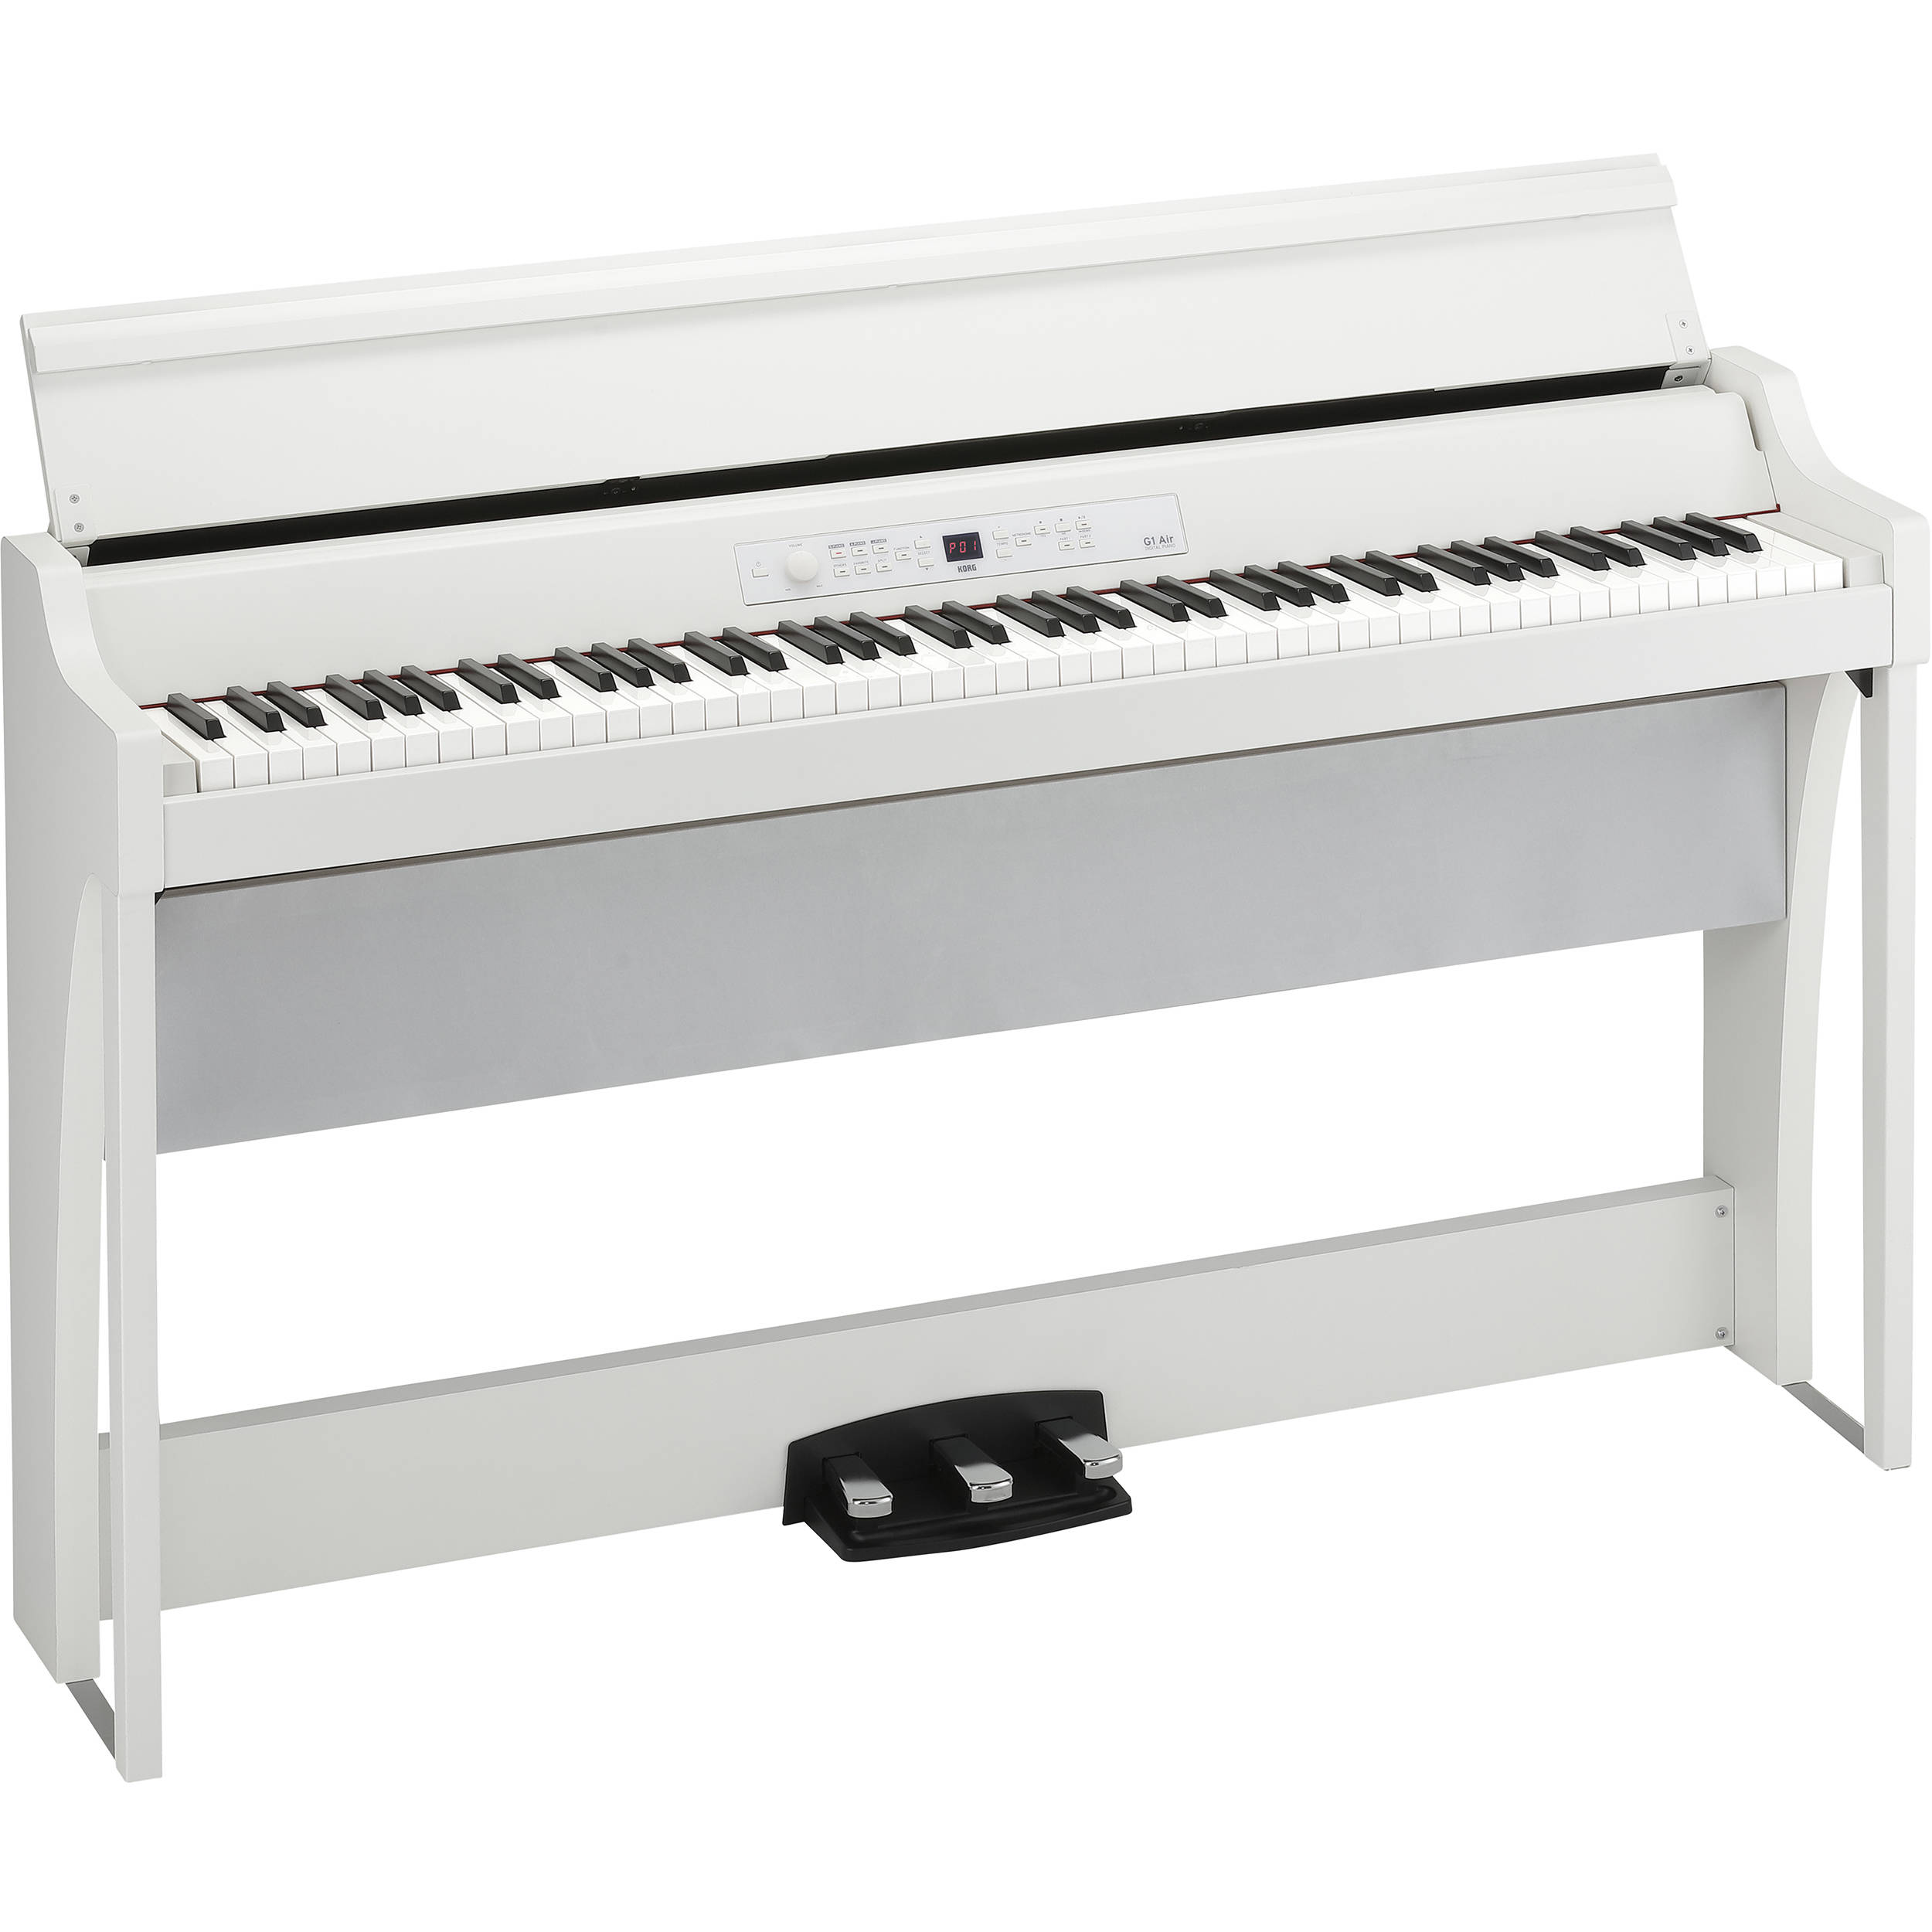 Korg G1 Air Digital Piano with Bluetooth (White)